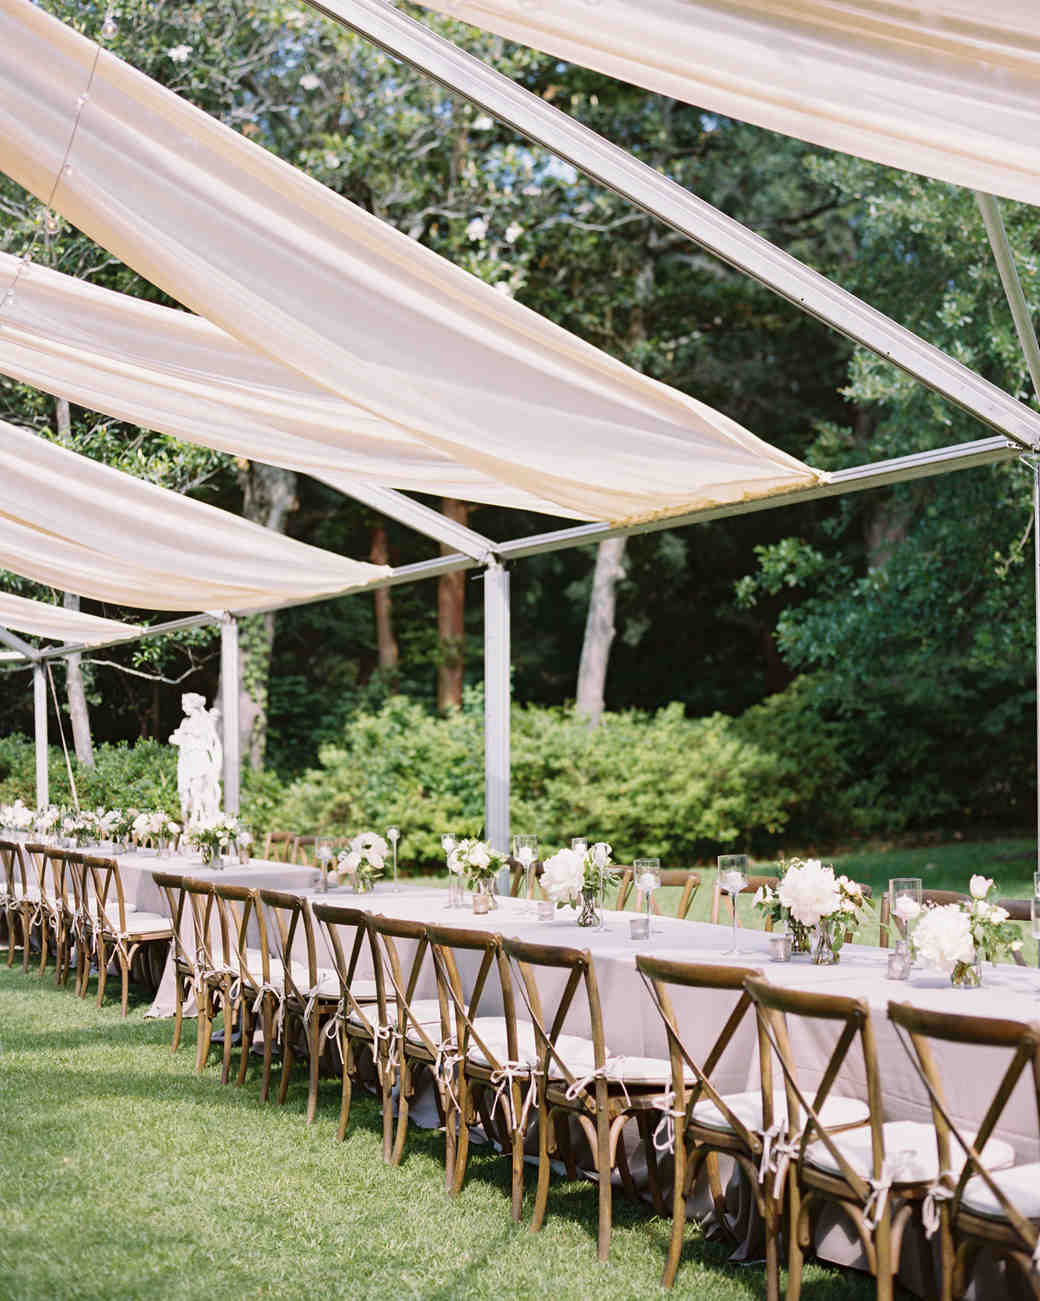 28 Tent Decorating Ideas That Will Upgrade Your Wedding Reception | Martha  Stewart Weddings